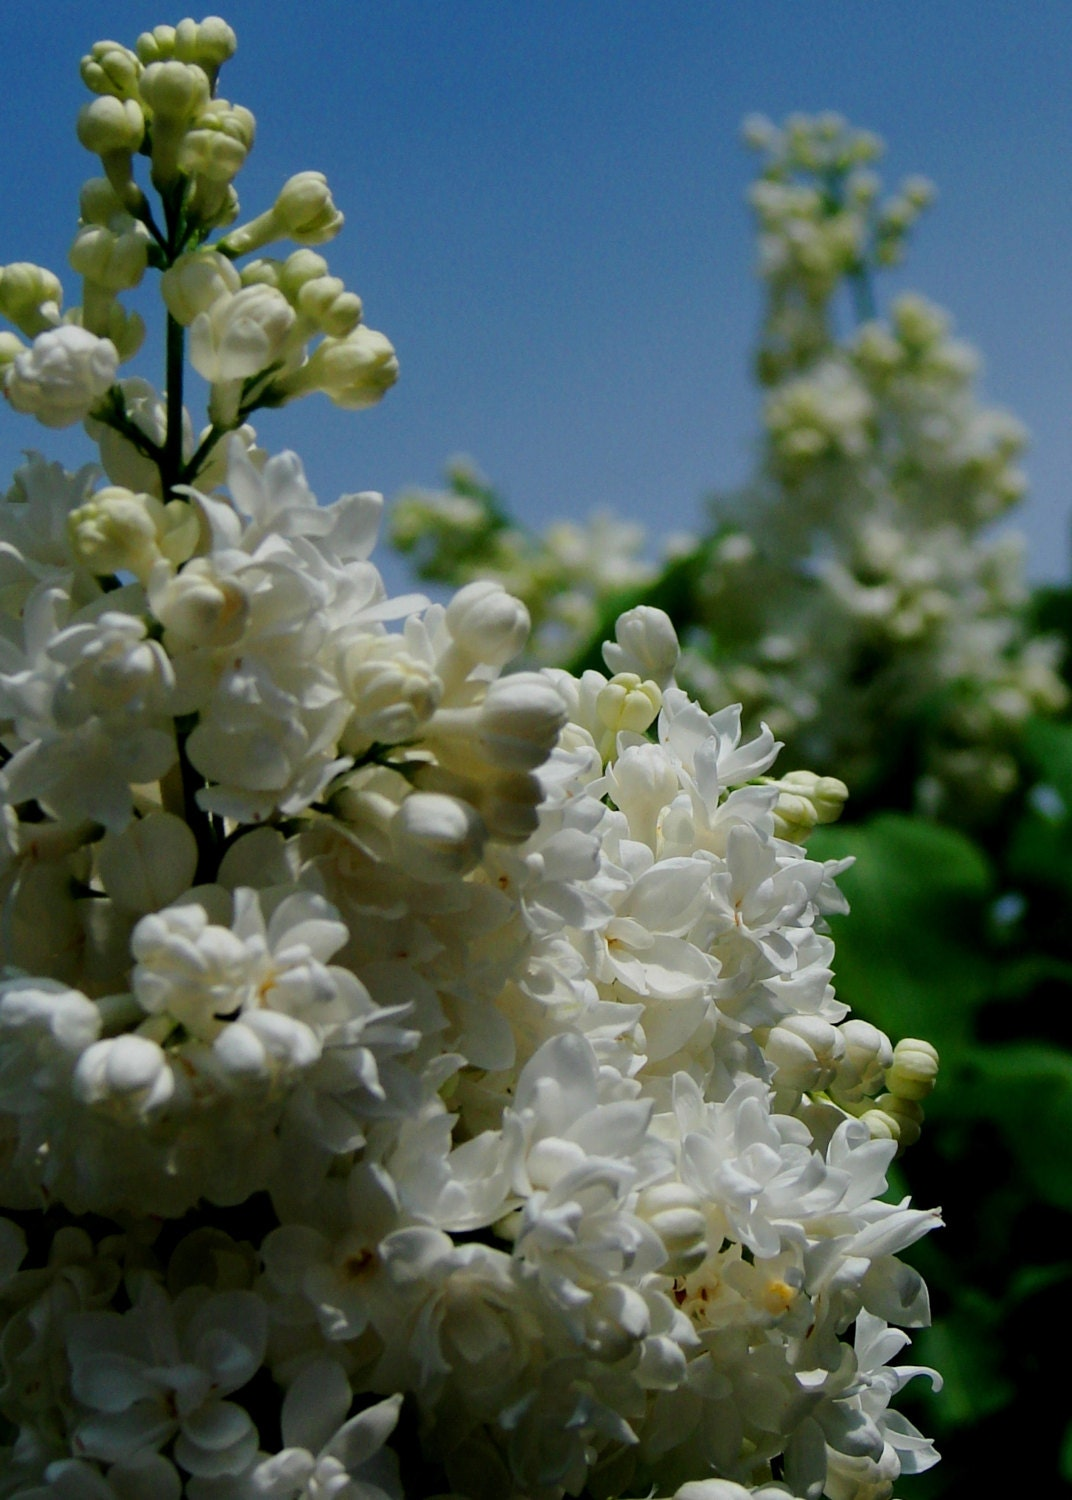 Flower Fine Art Photography-White Lilac 2 - 5x7 print - CelticVisions